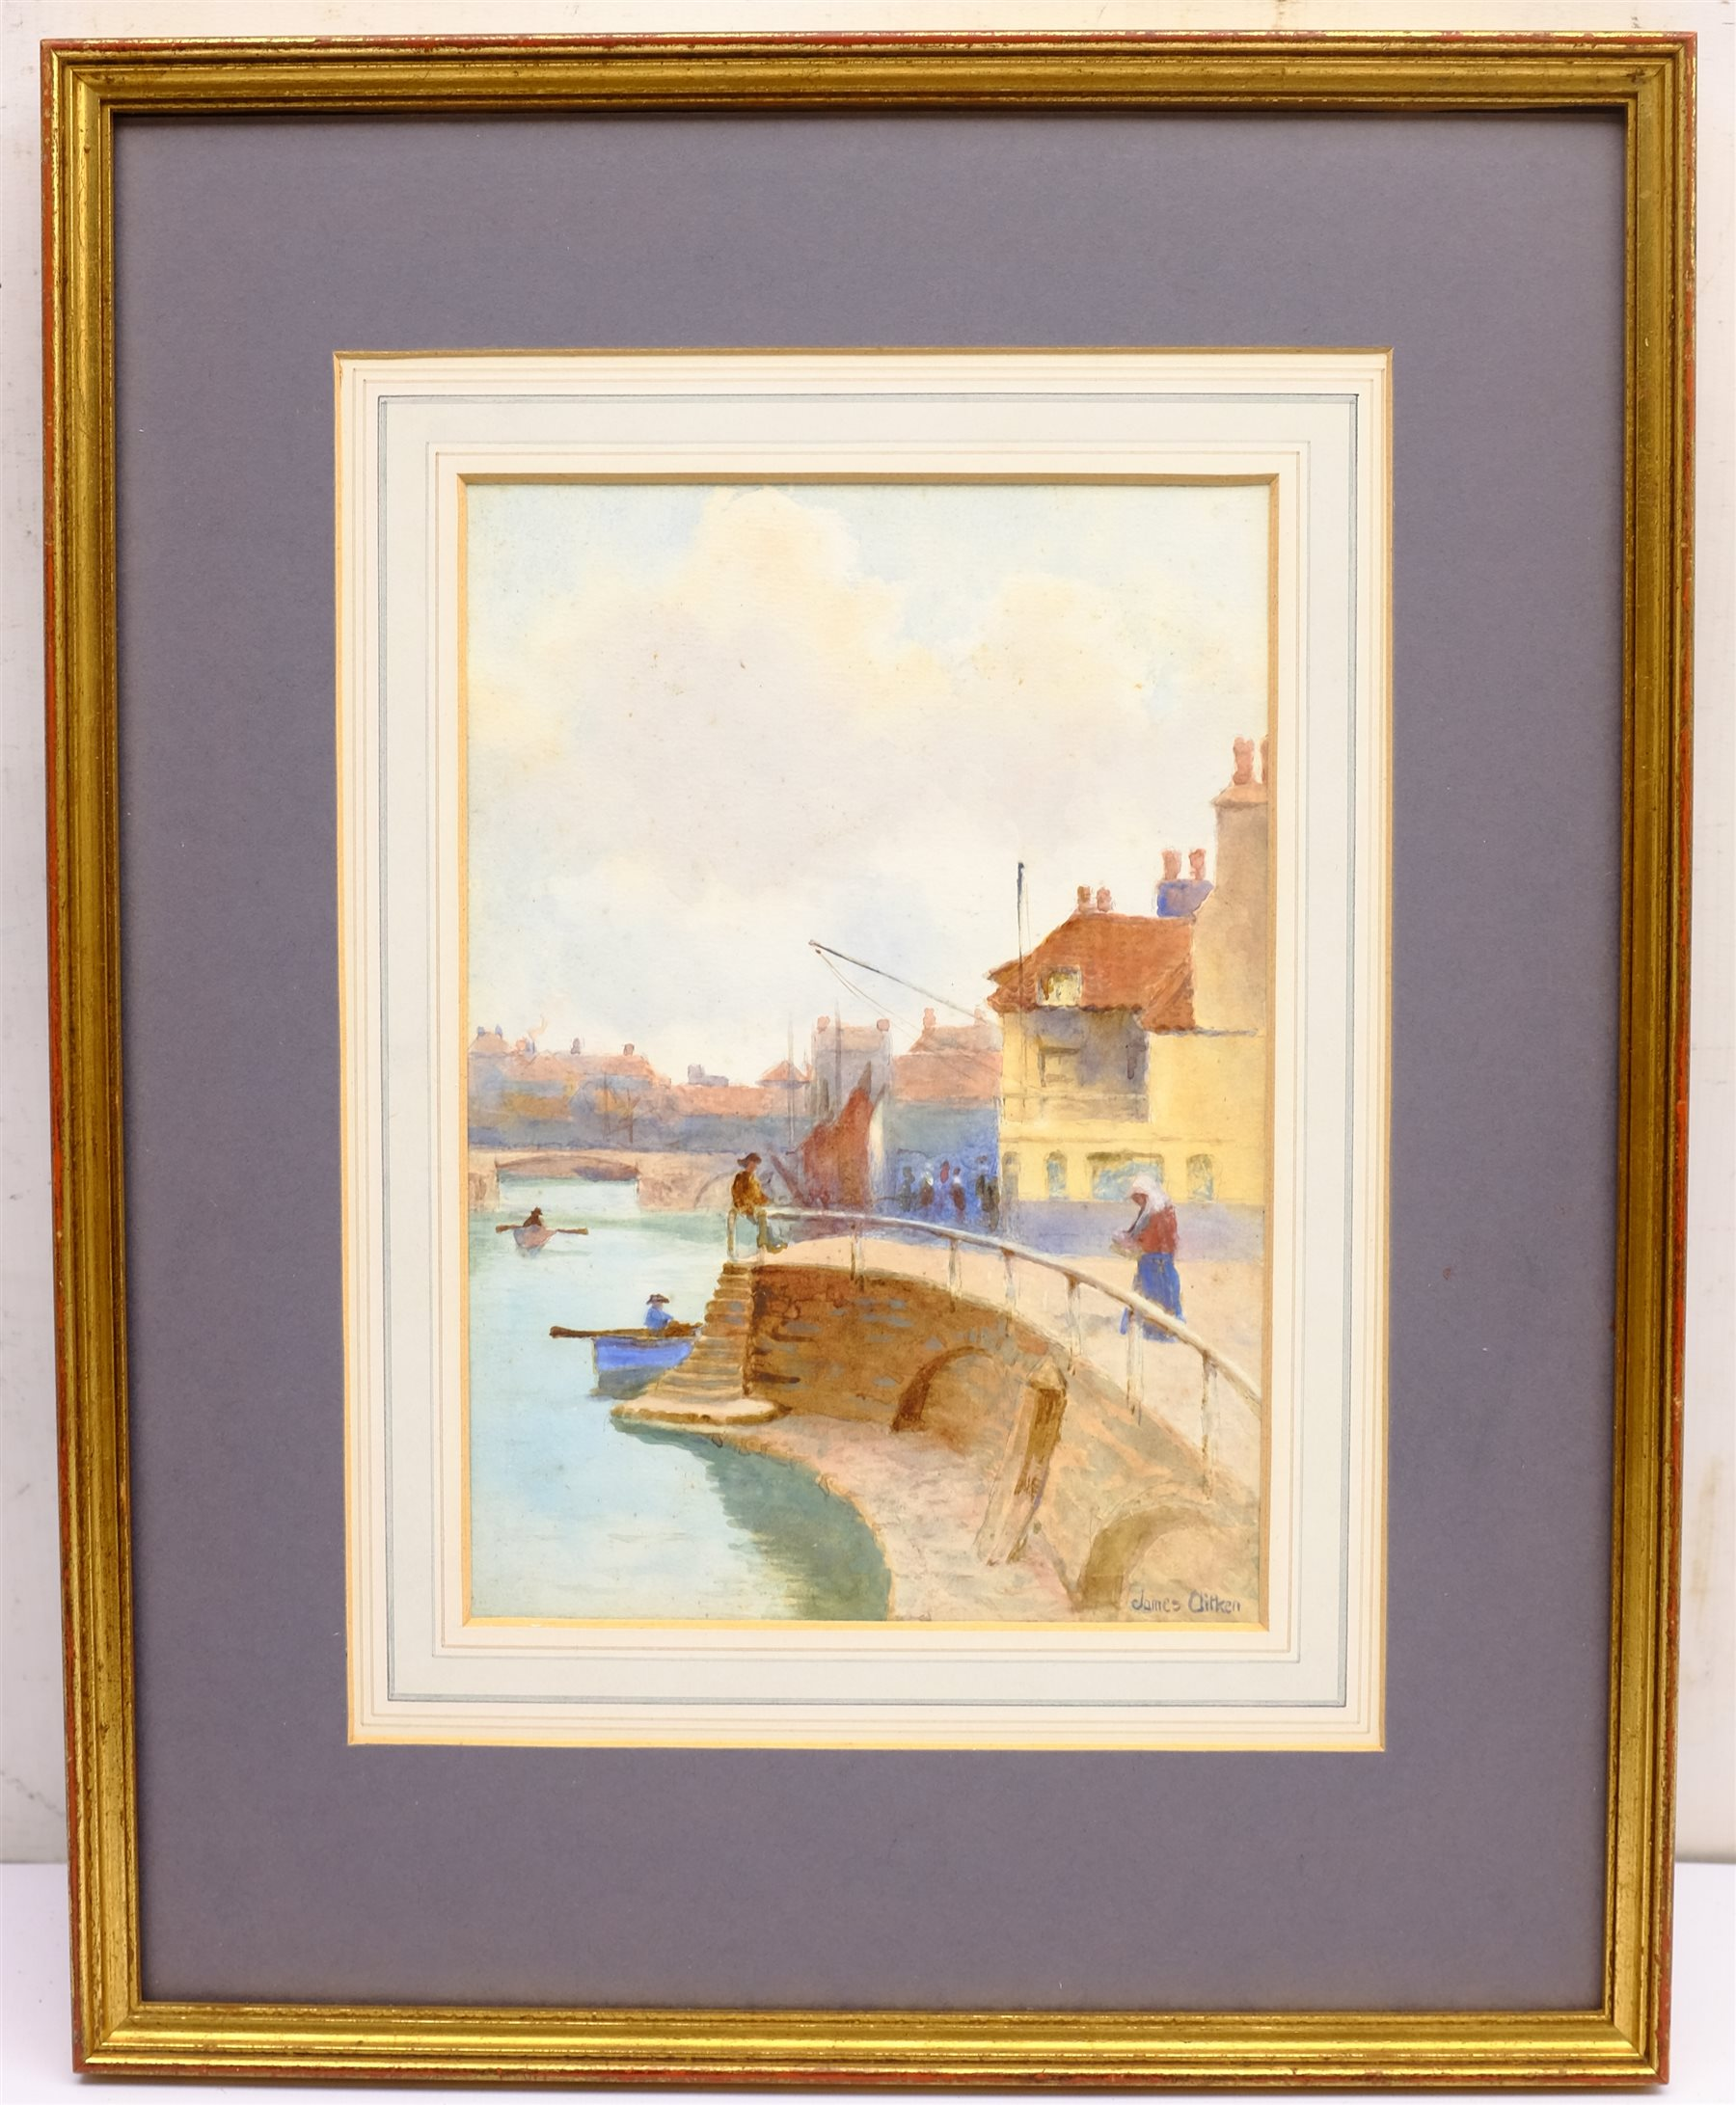 James Alfred Aitken (British 1846-1897): 'Whitby Harbour', watercolour signed, titled and dated 1876 - Image 3 of 4